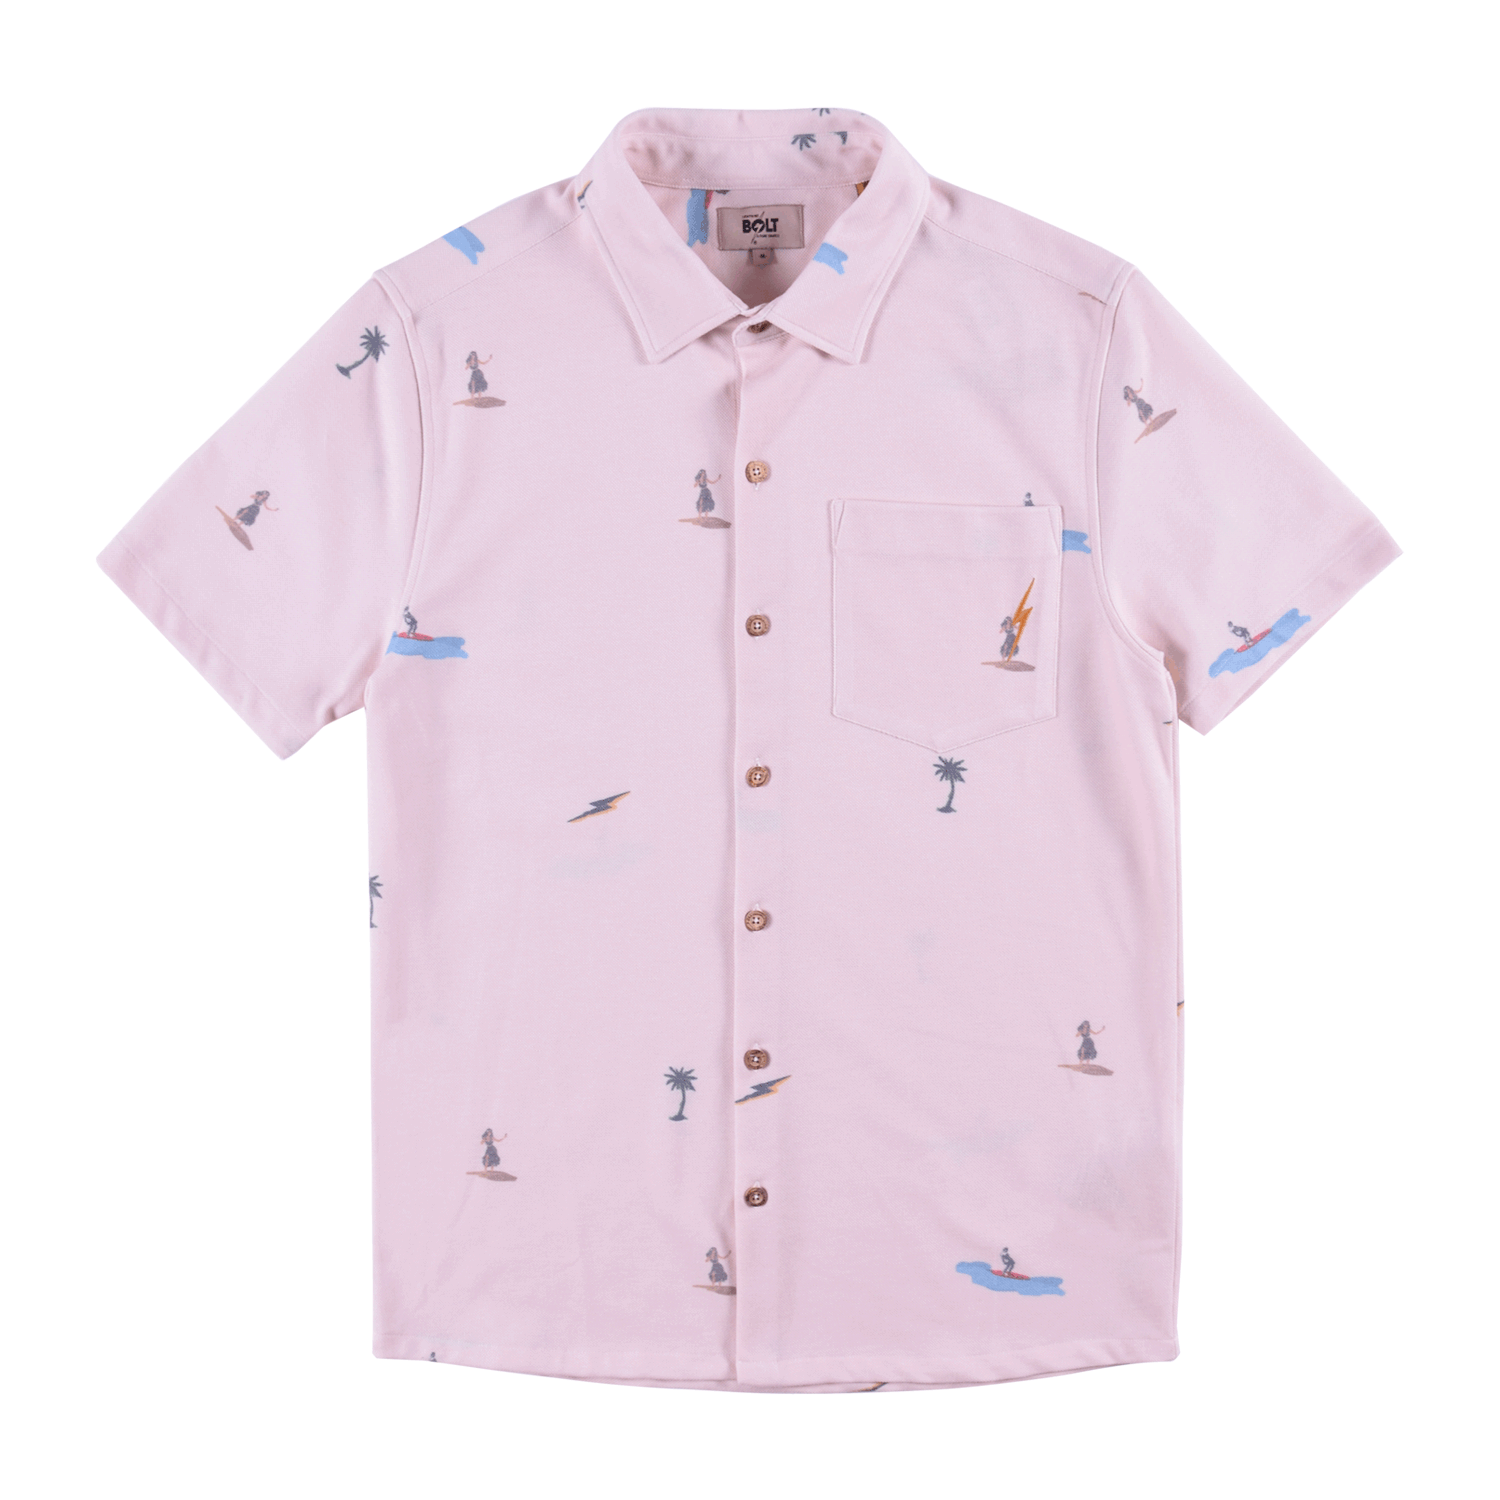 Lightning Bolt SS21 Men's Surf Apparel